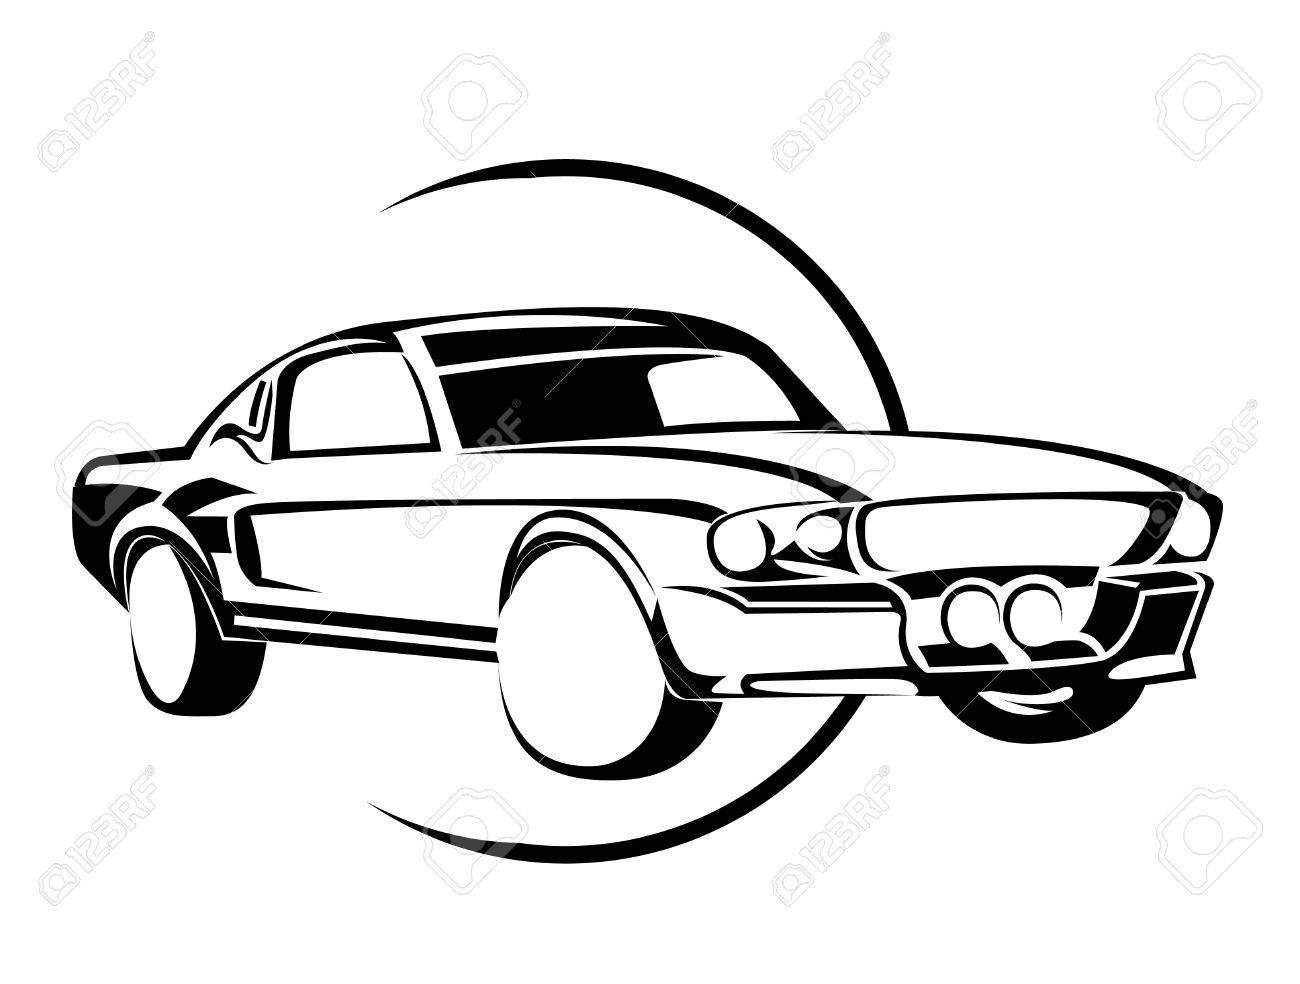 Old Muscle Car Royalty Free Cliparts, Vectors, And Stock ...